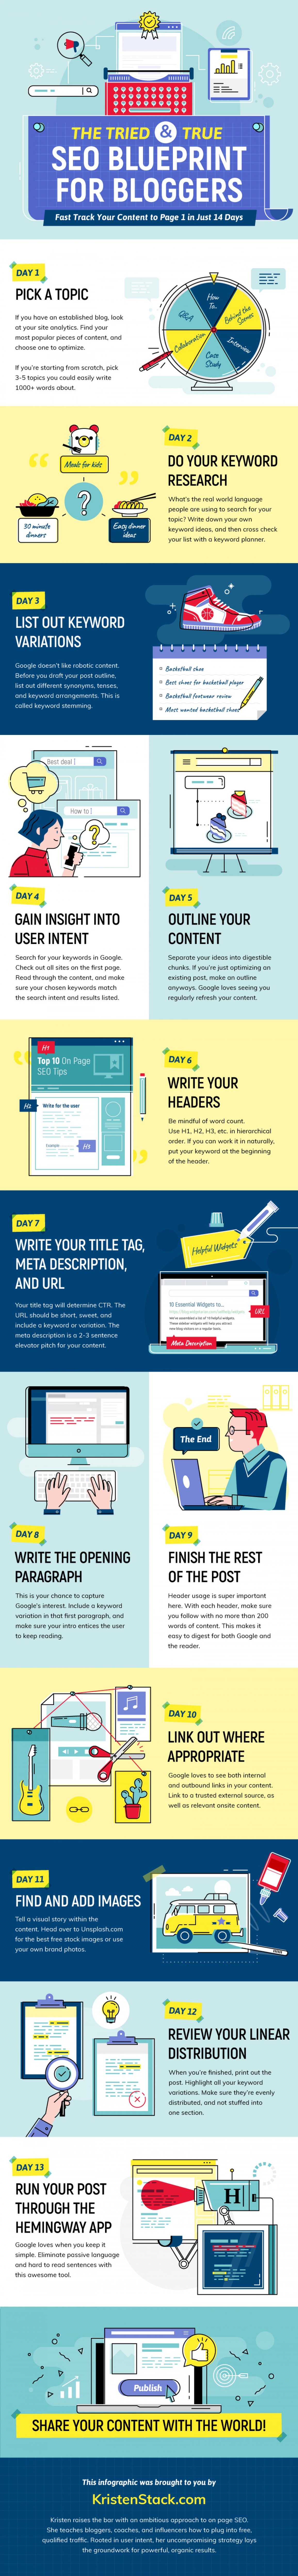 The Tried & True SEO Blueprint For Bloggers Infographic